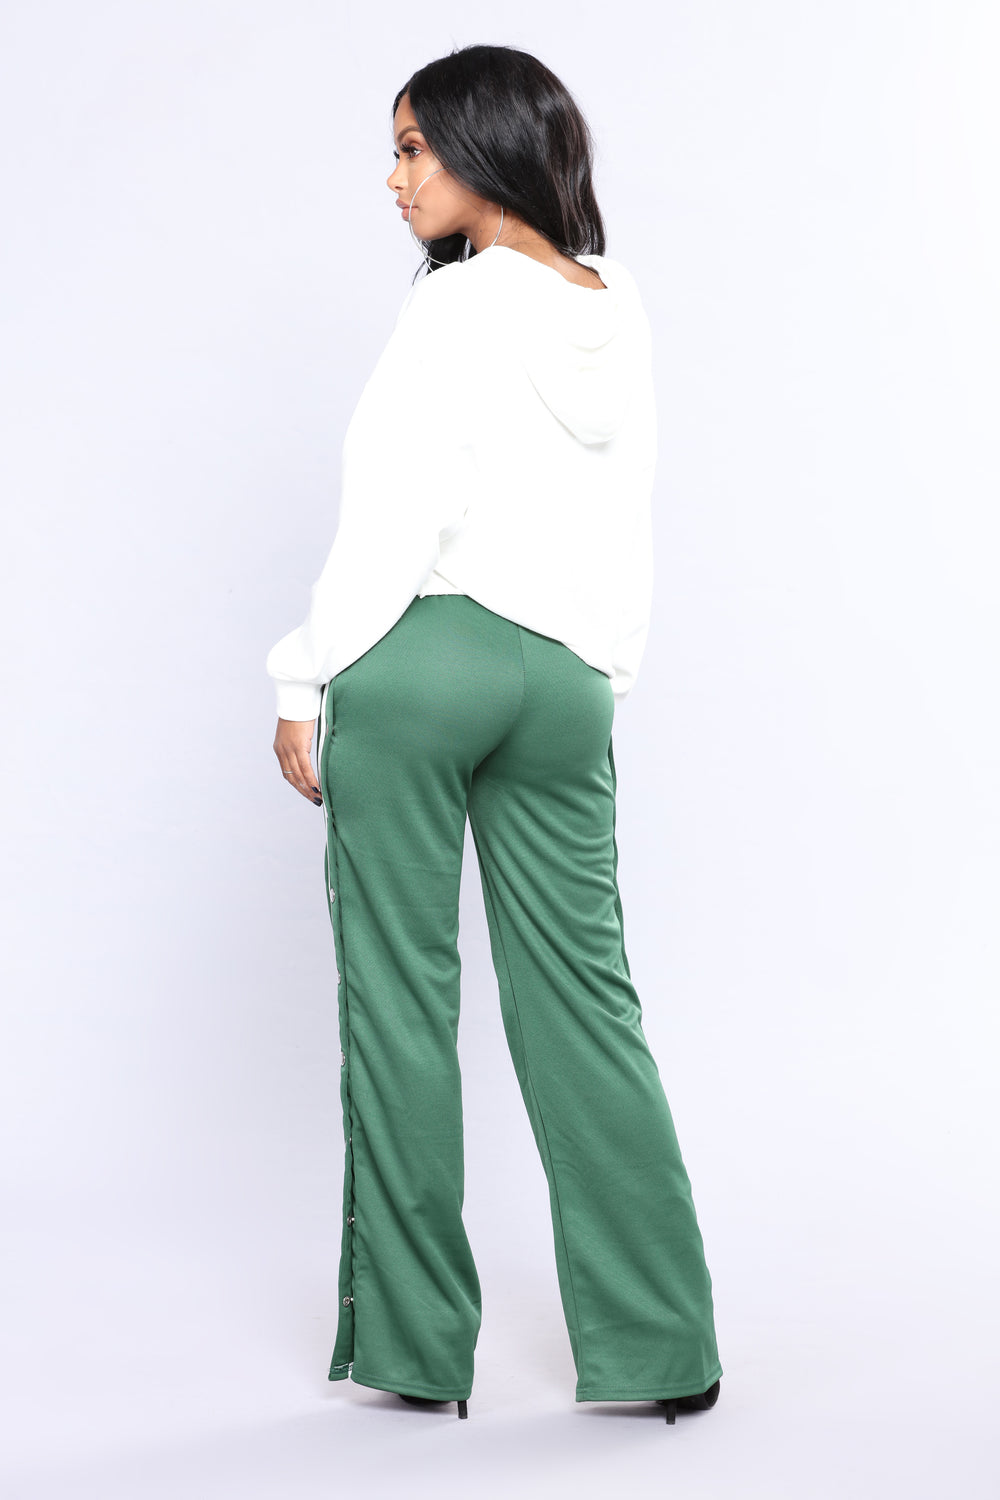 Playa Hatin' Pants - Green/White